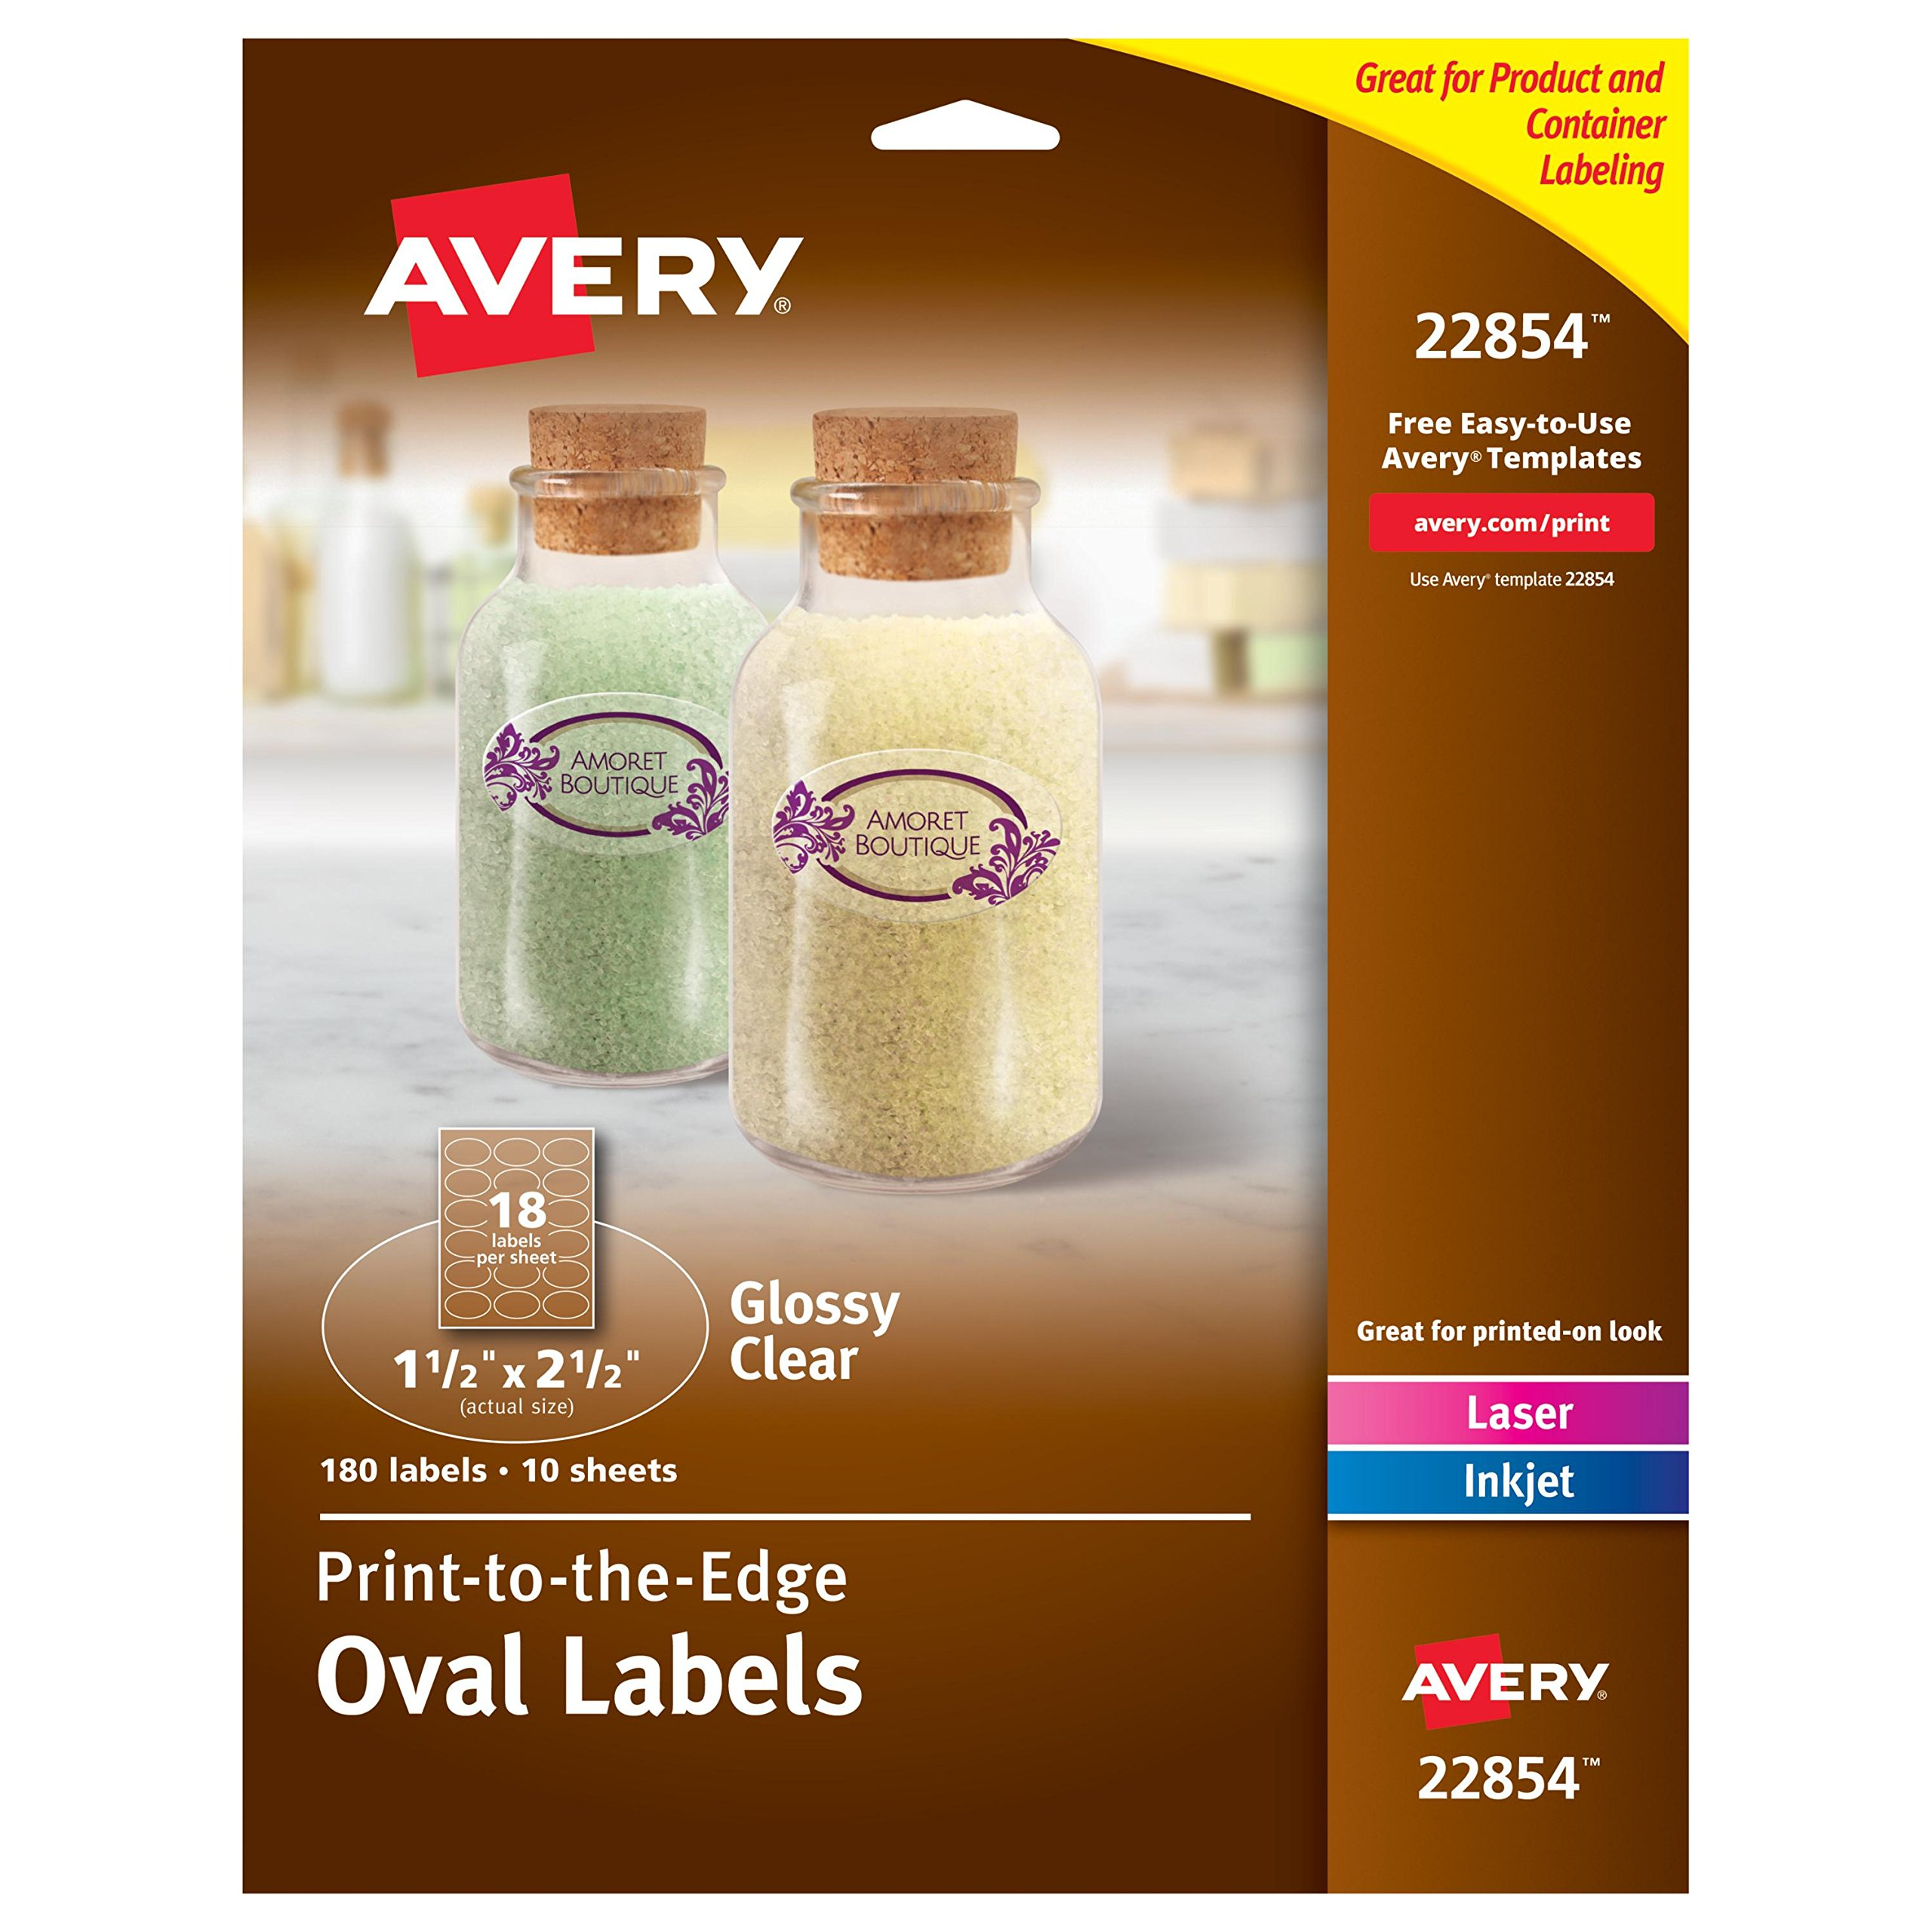 Avery Print-to-the-Edge Glossy Clear Oval Labels,1-1/2'' x 2-1/2'' Diameter, Pack of 180 Labels (22854)